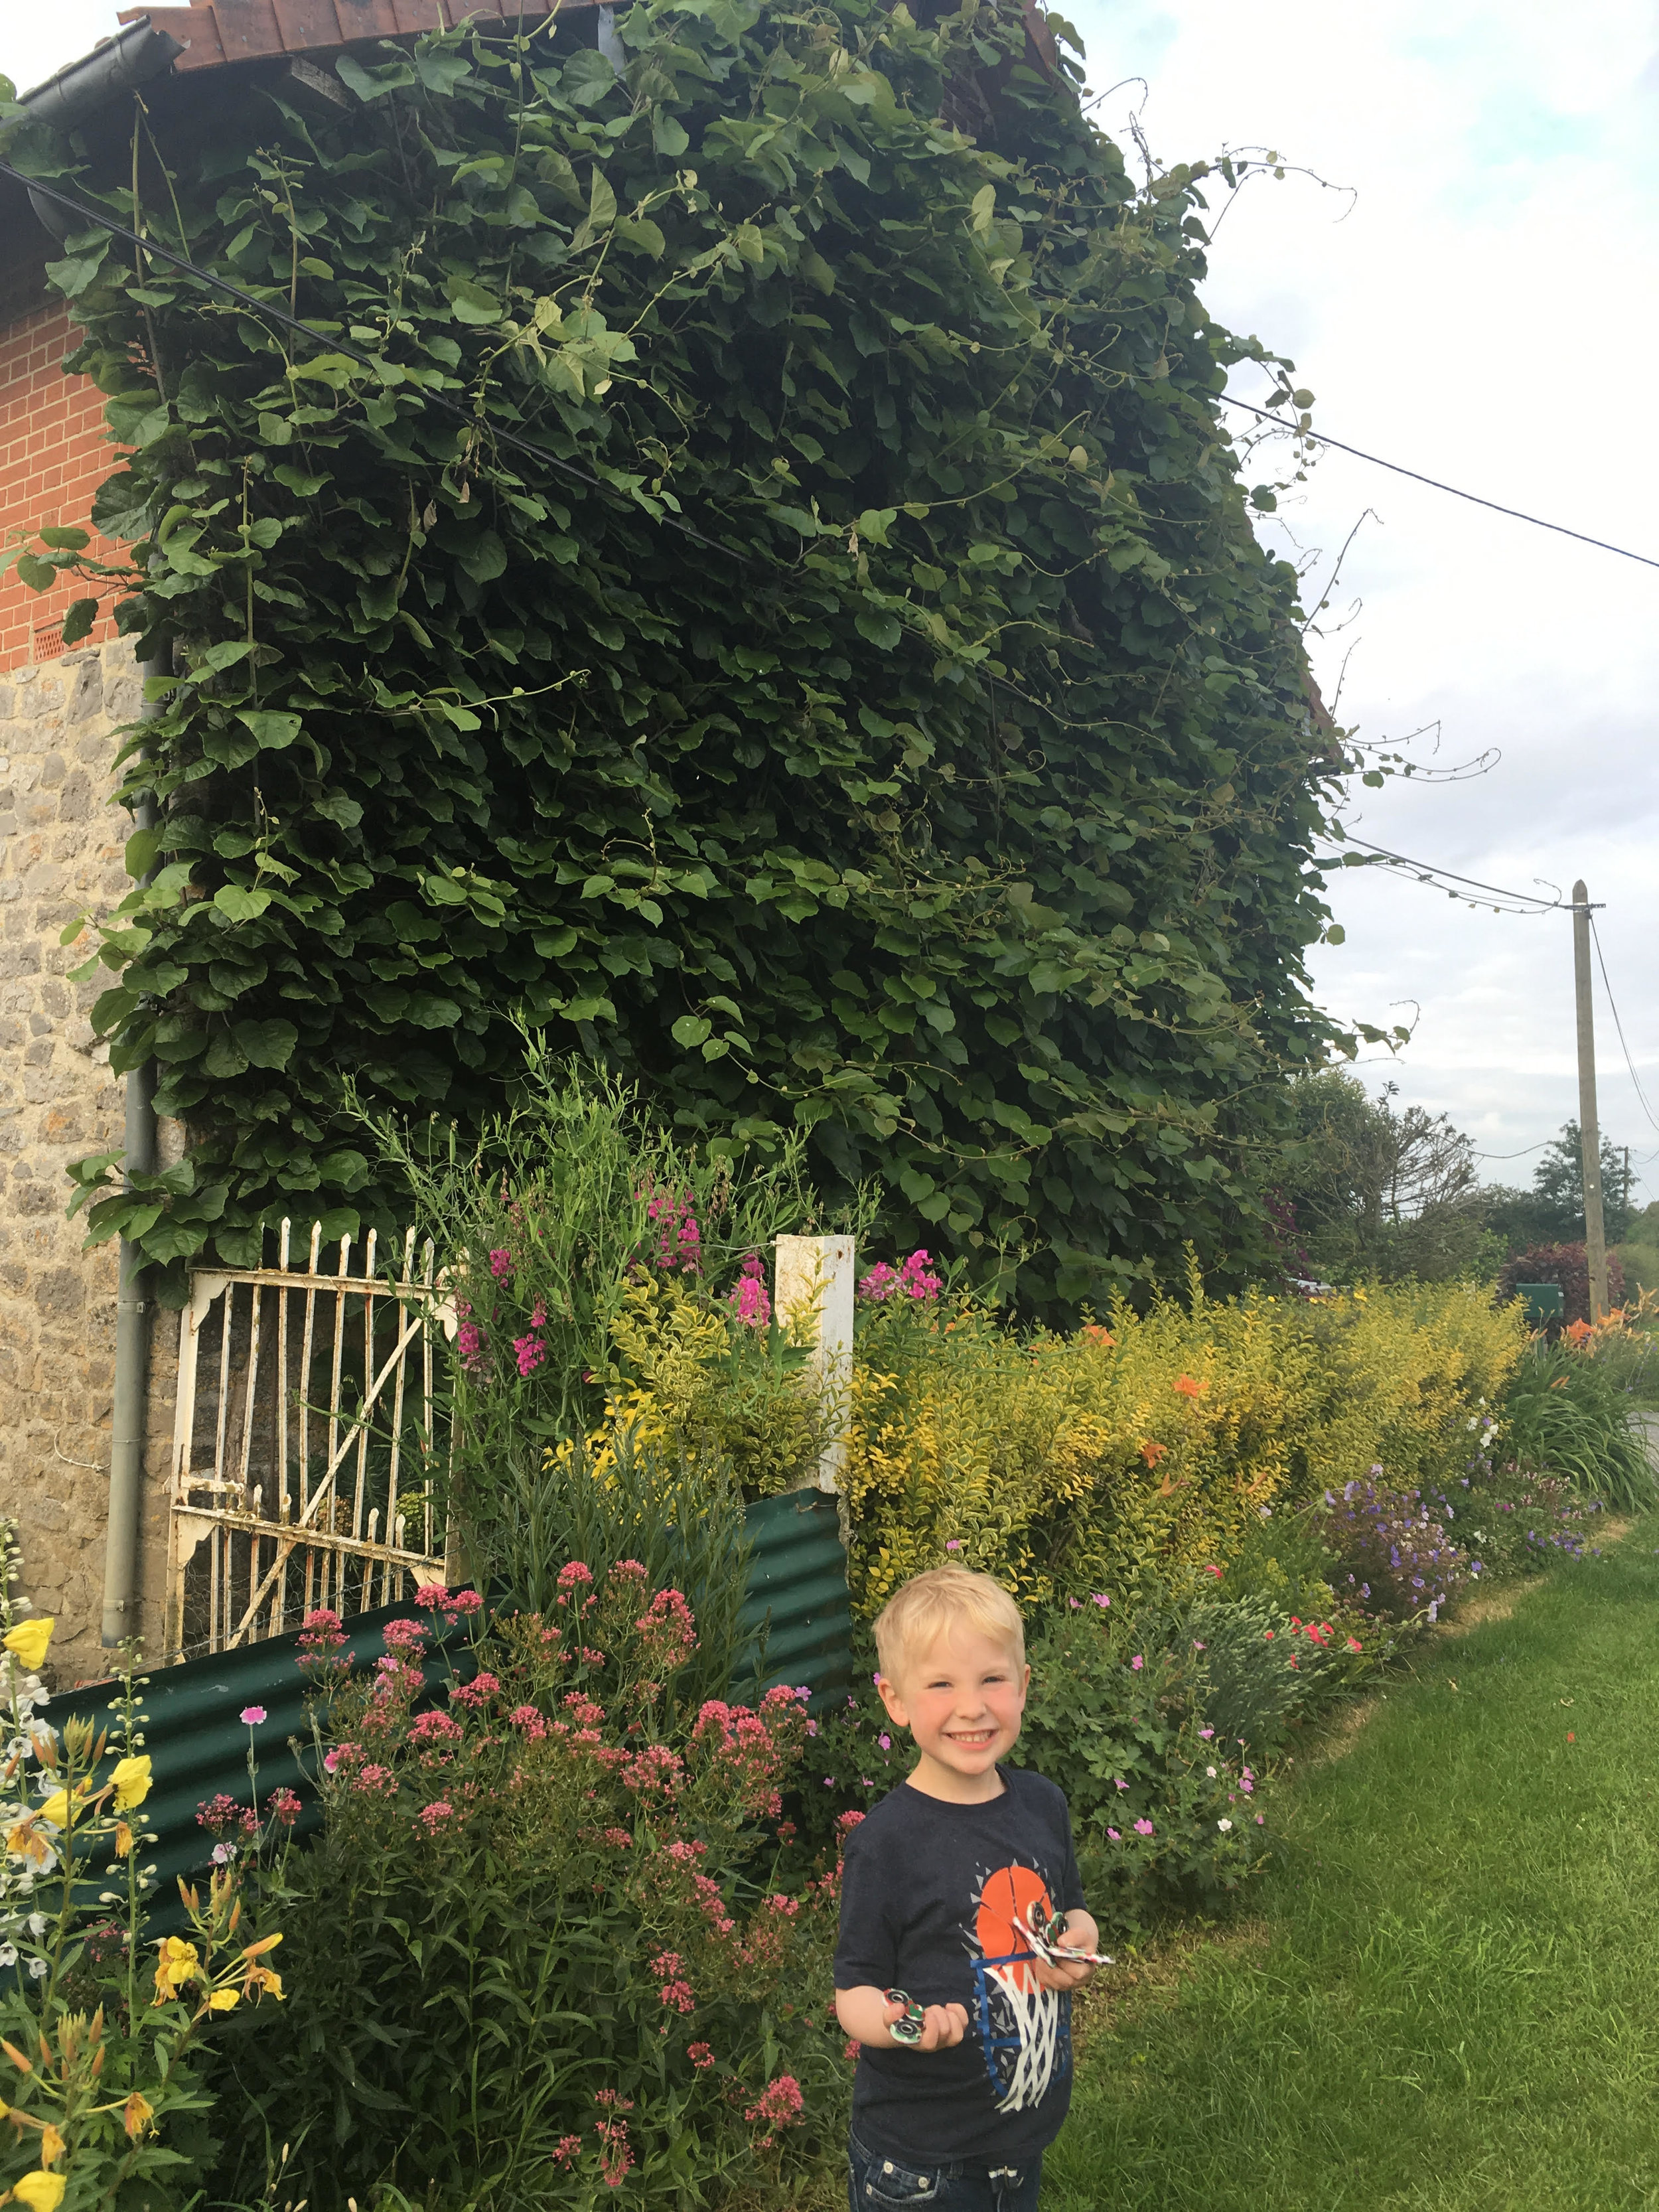 Look at these kiwi vines growing on my parents stone and brick house in North of France!